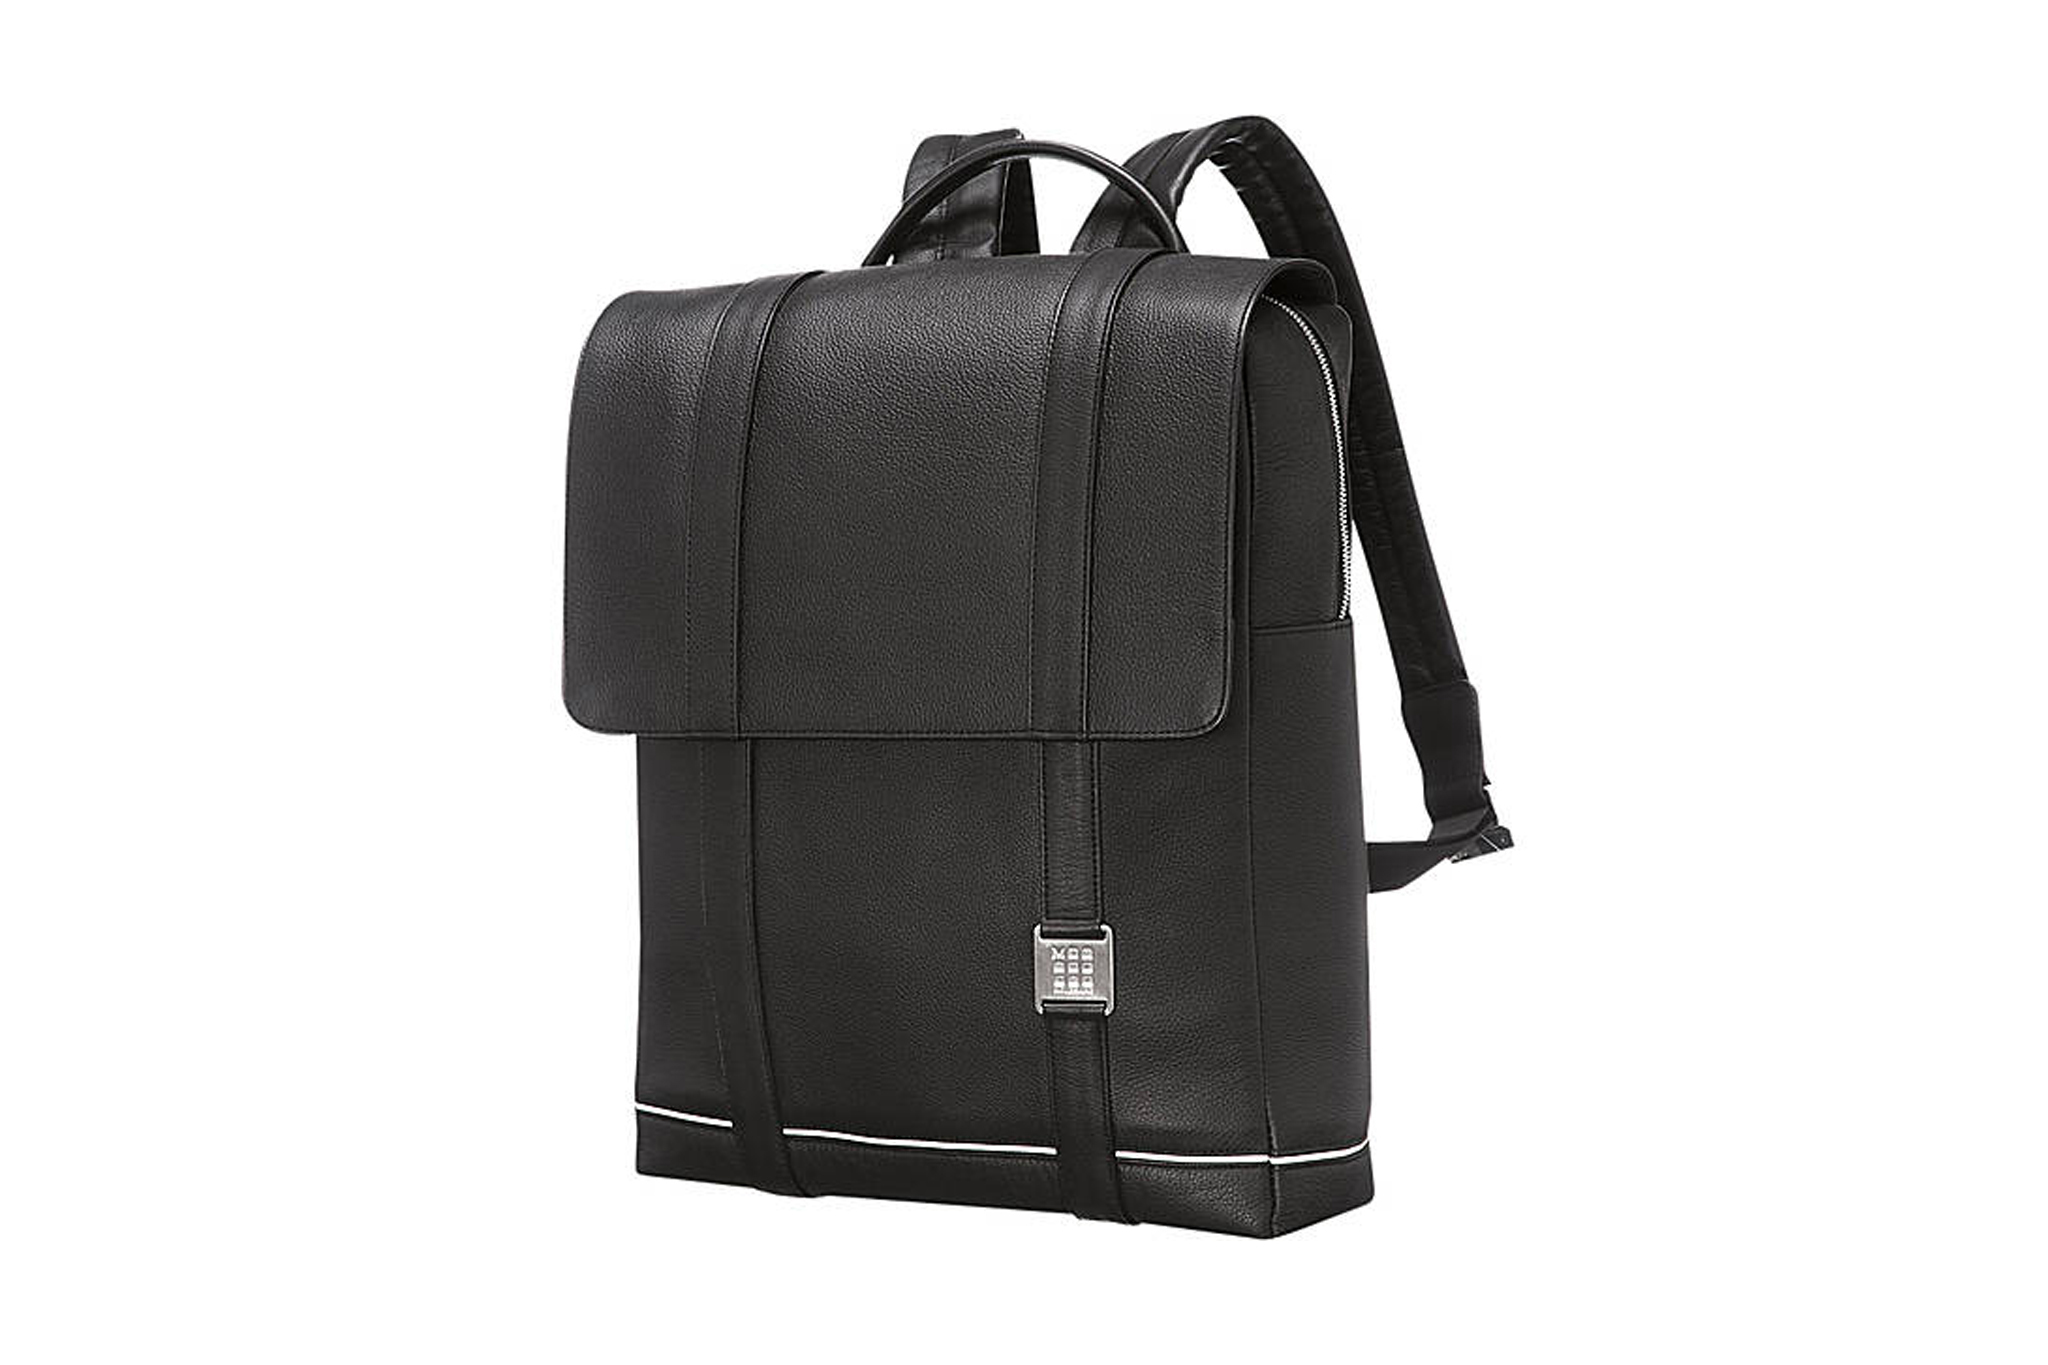 Moleskine Lineage Leather Backpack